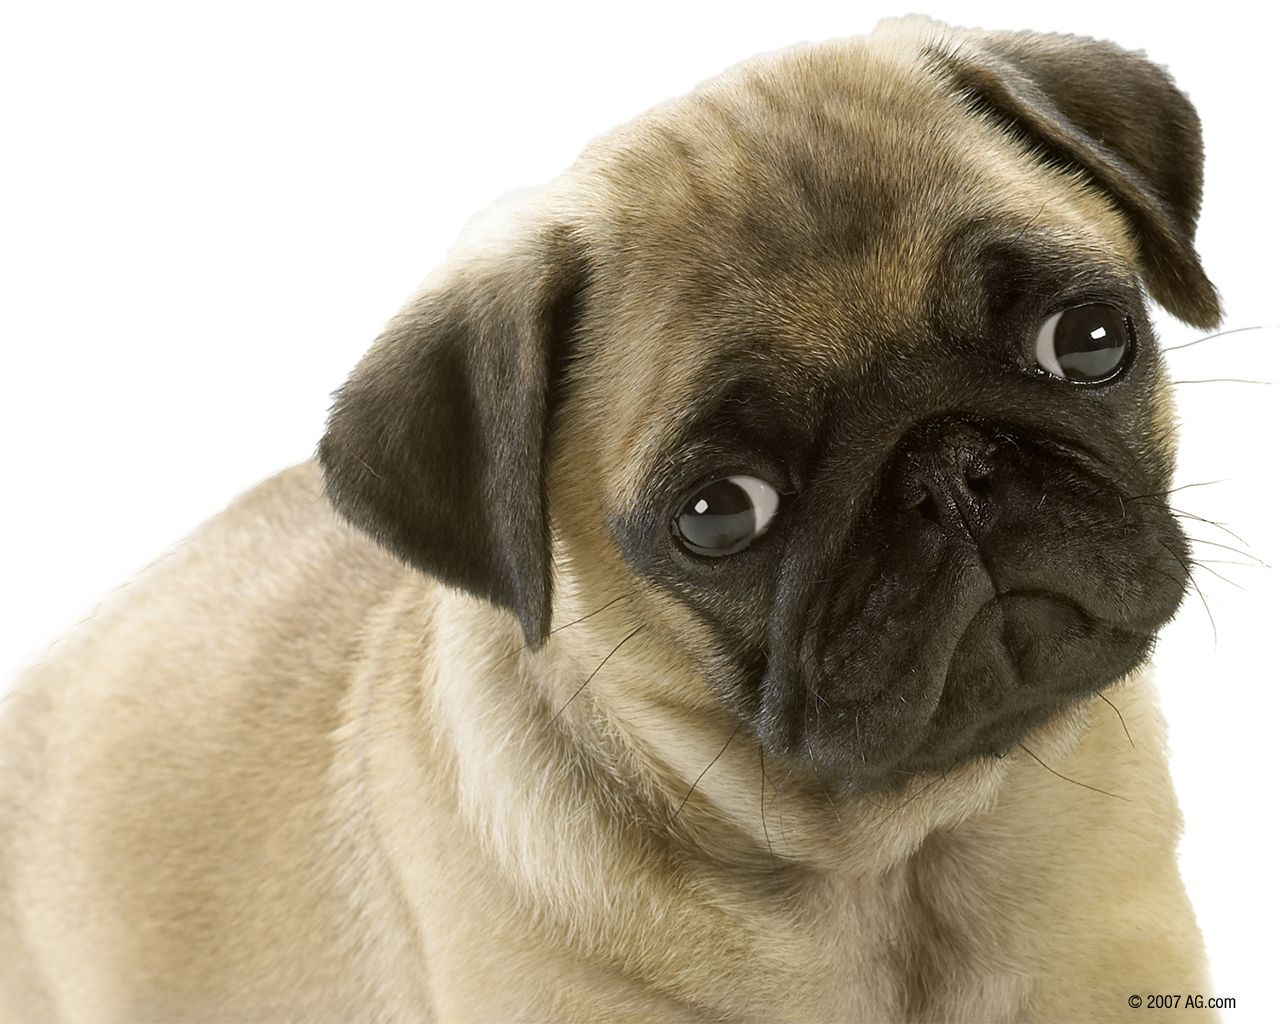 The Pug Is A Toy Dog With A Wrinkly Short Muzzled Face And